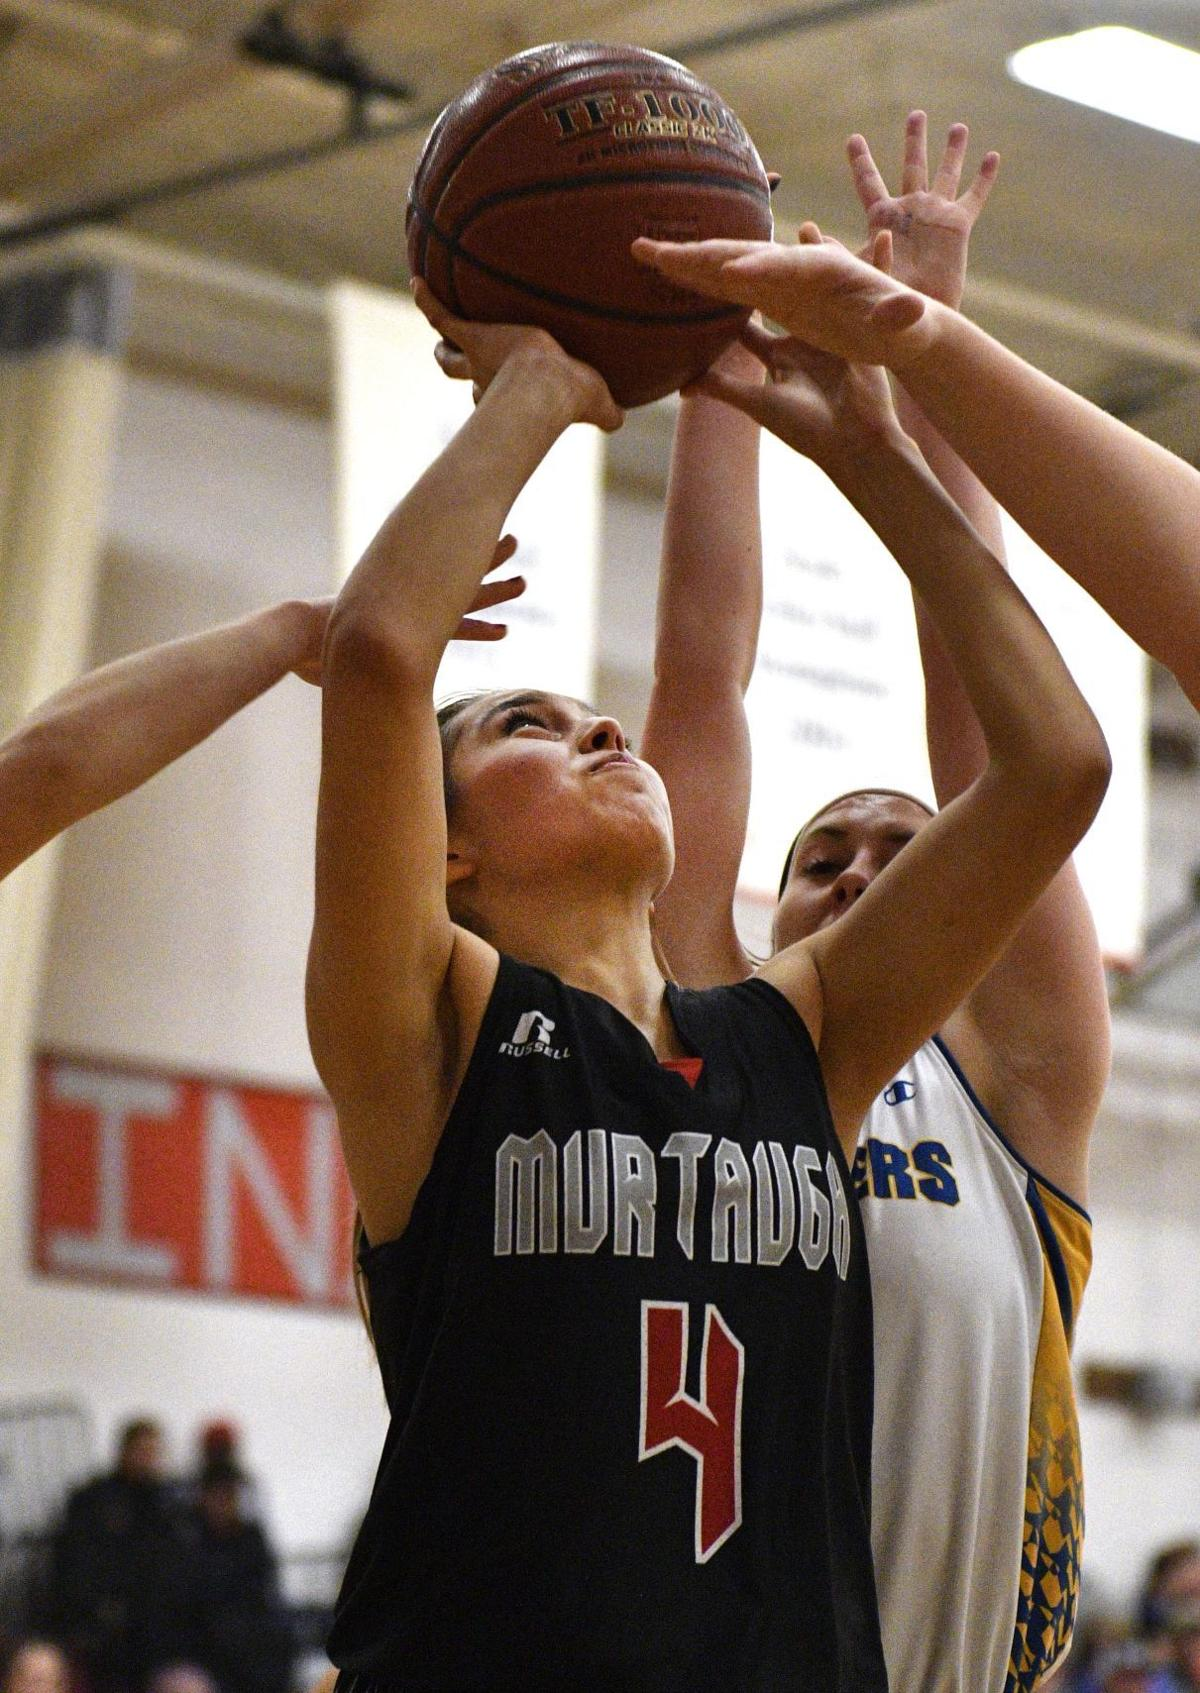 Girls Basketball - 1A Division II Championship FILE